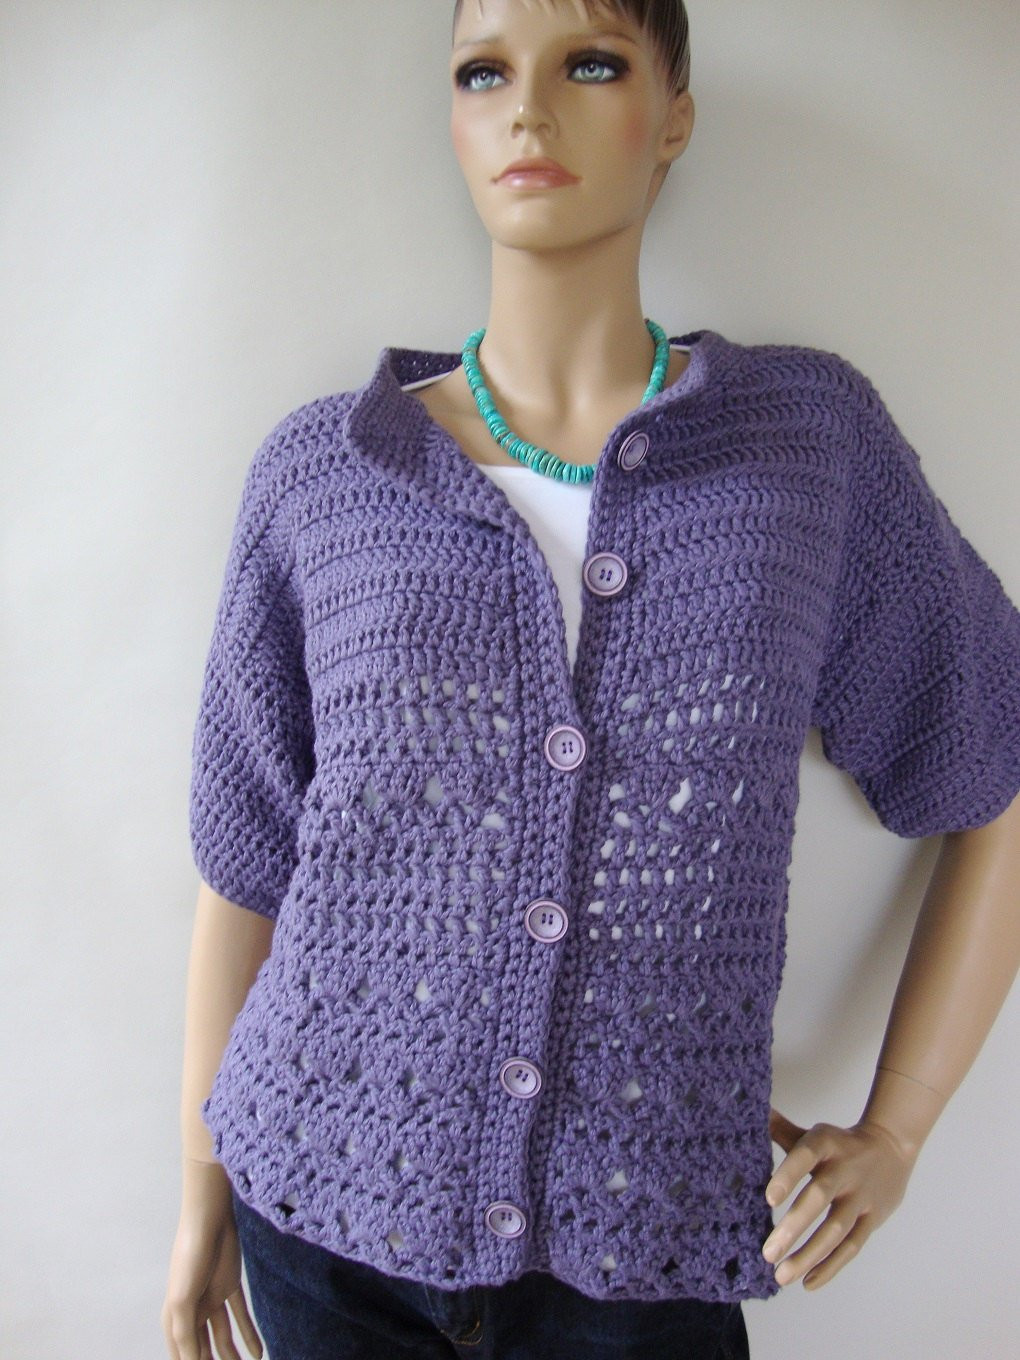 Crochet Jacket Best Of Crochet Sweater Summer Cardigan Blue Cardigan Cotton Of Charming 45 Pictures Crochet Jacket